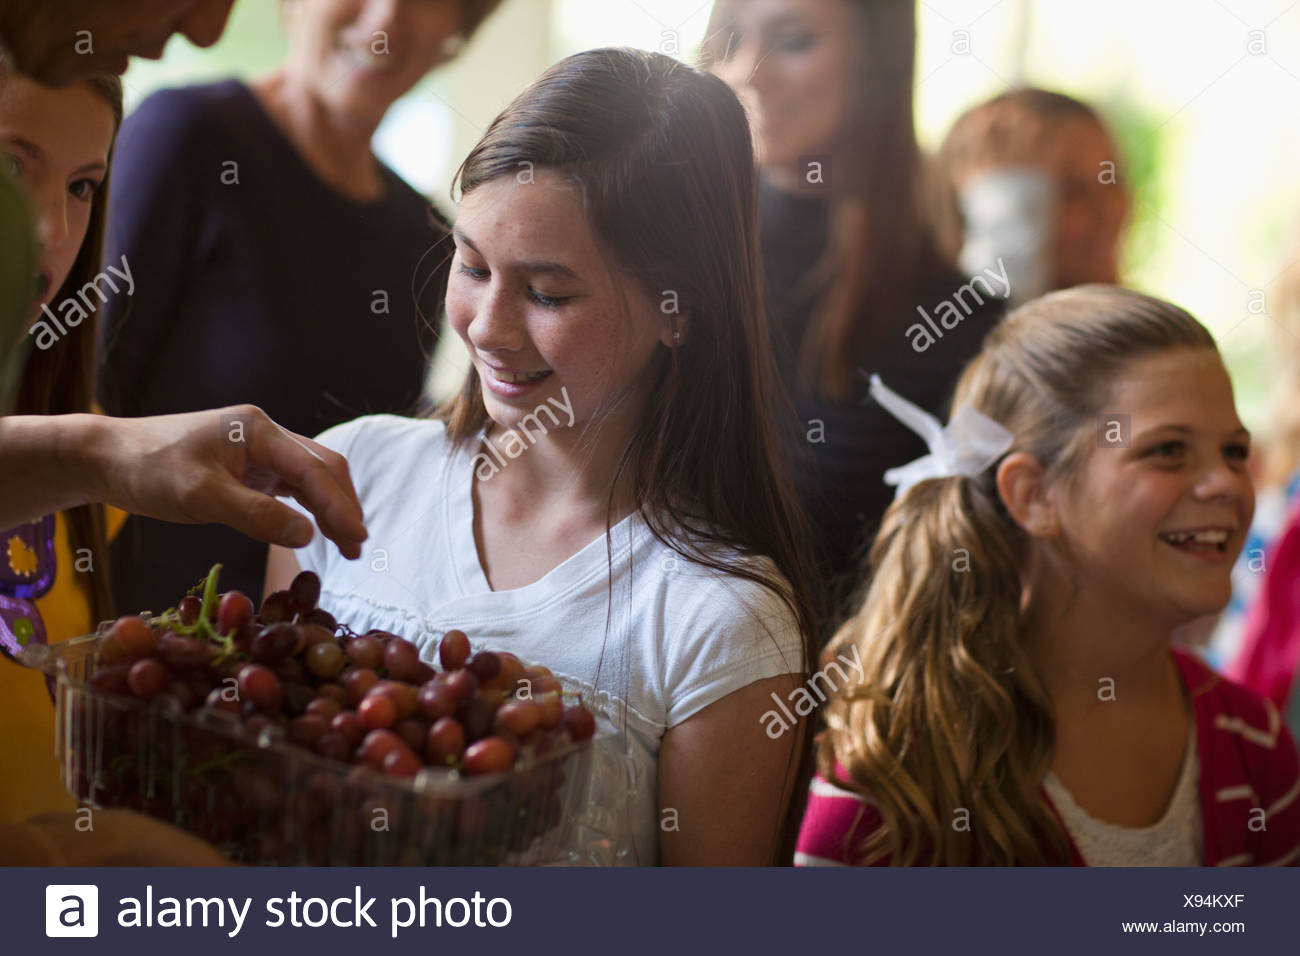 Girls (10-11, 14-15) and family during celebration event - Stock Image